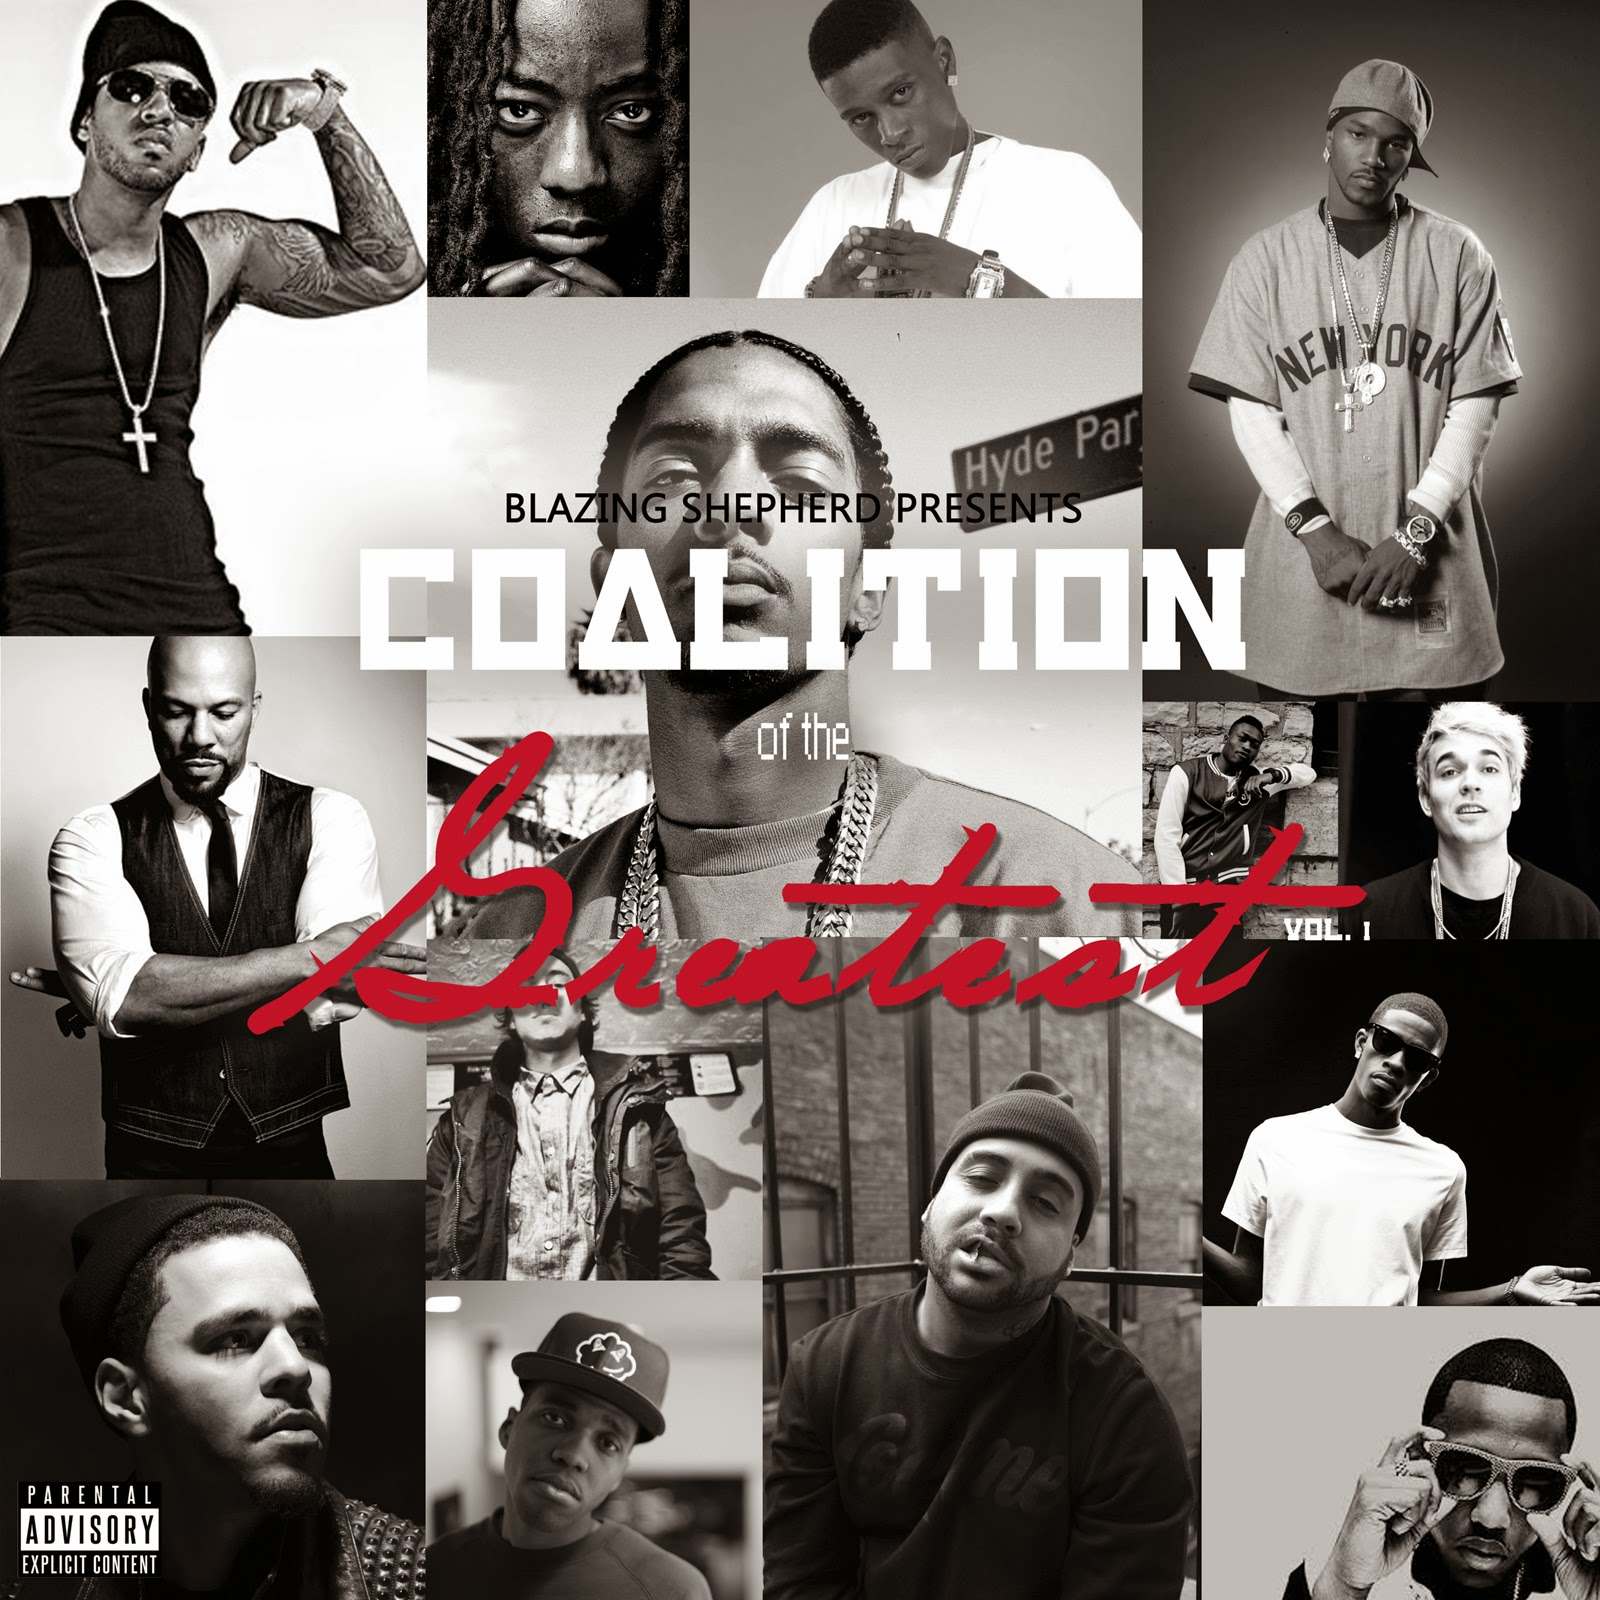 coalition of the greatest vol. 1